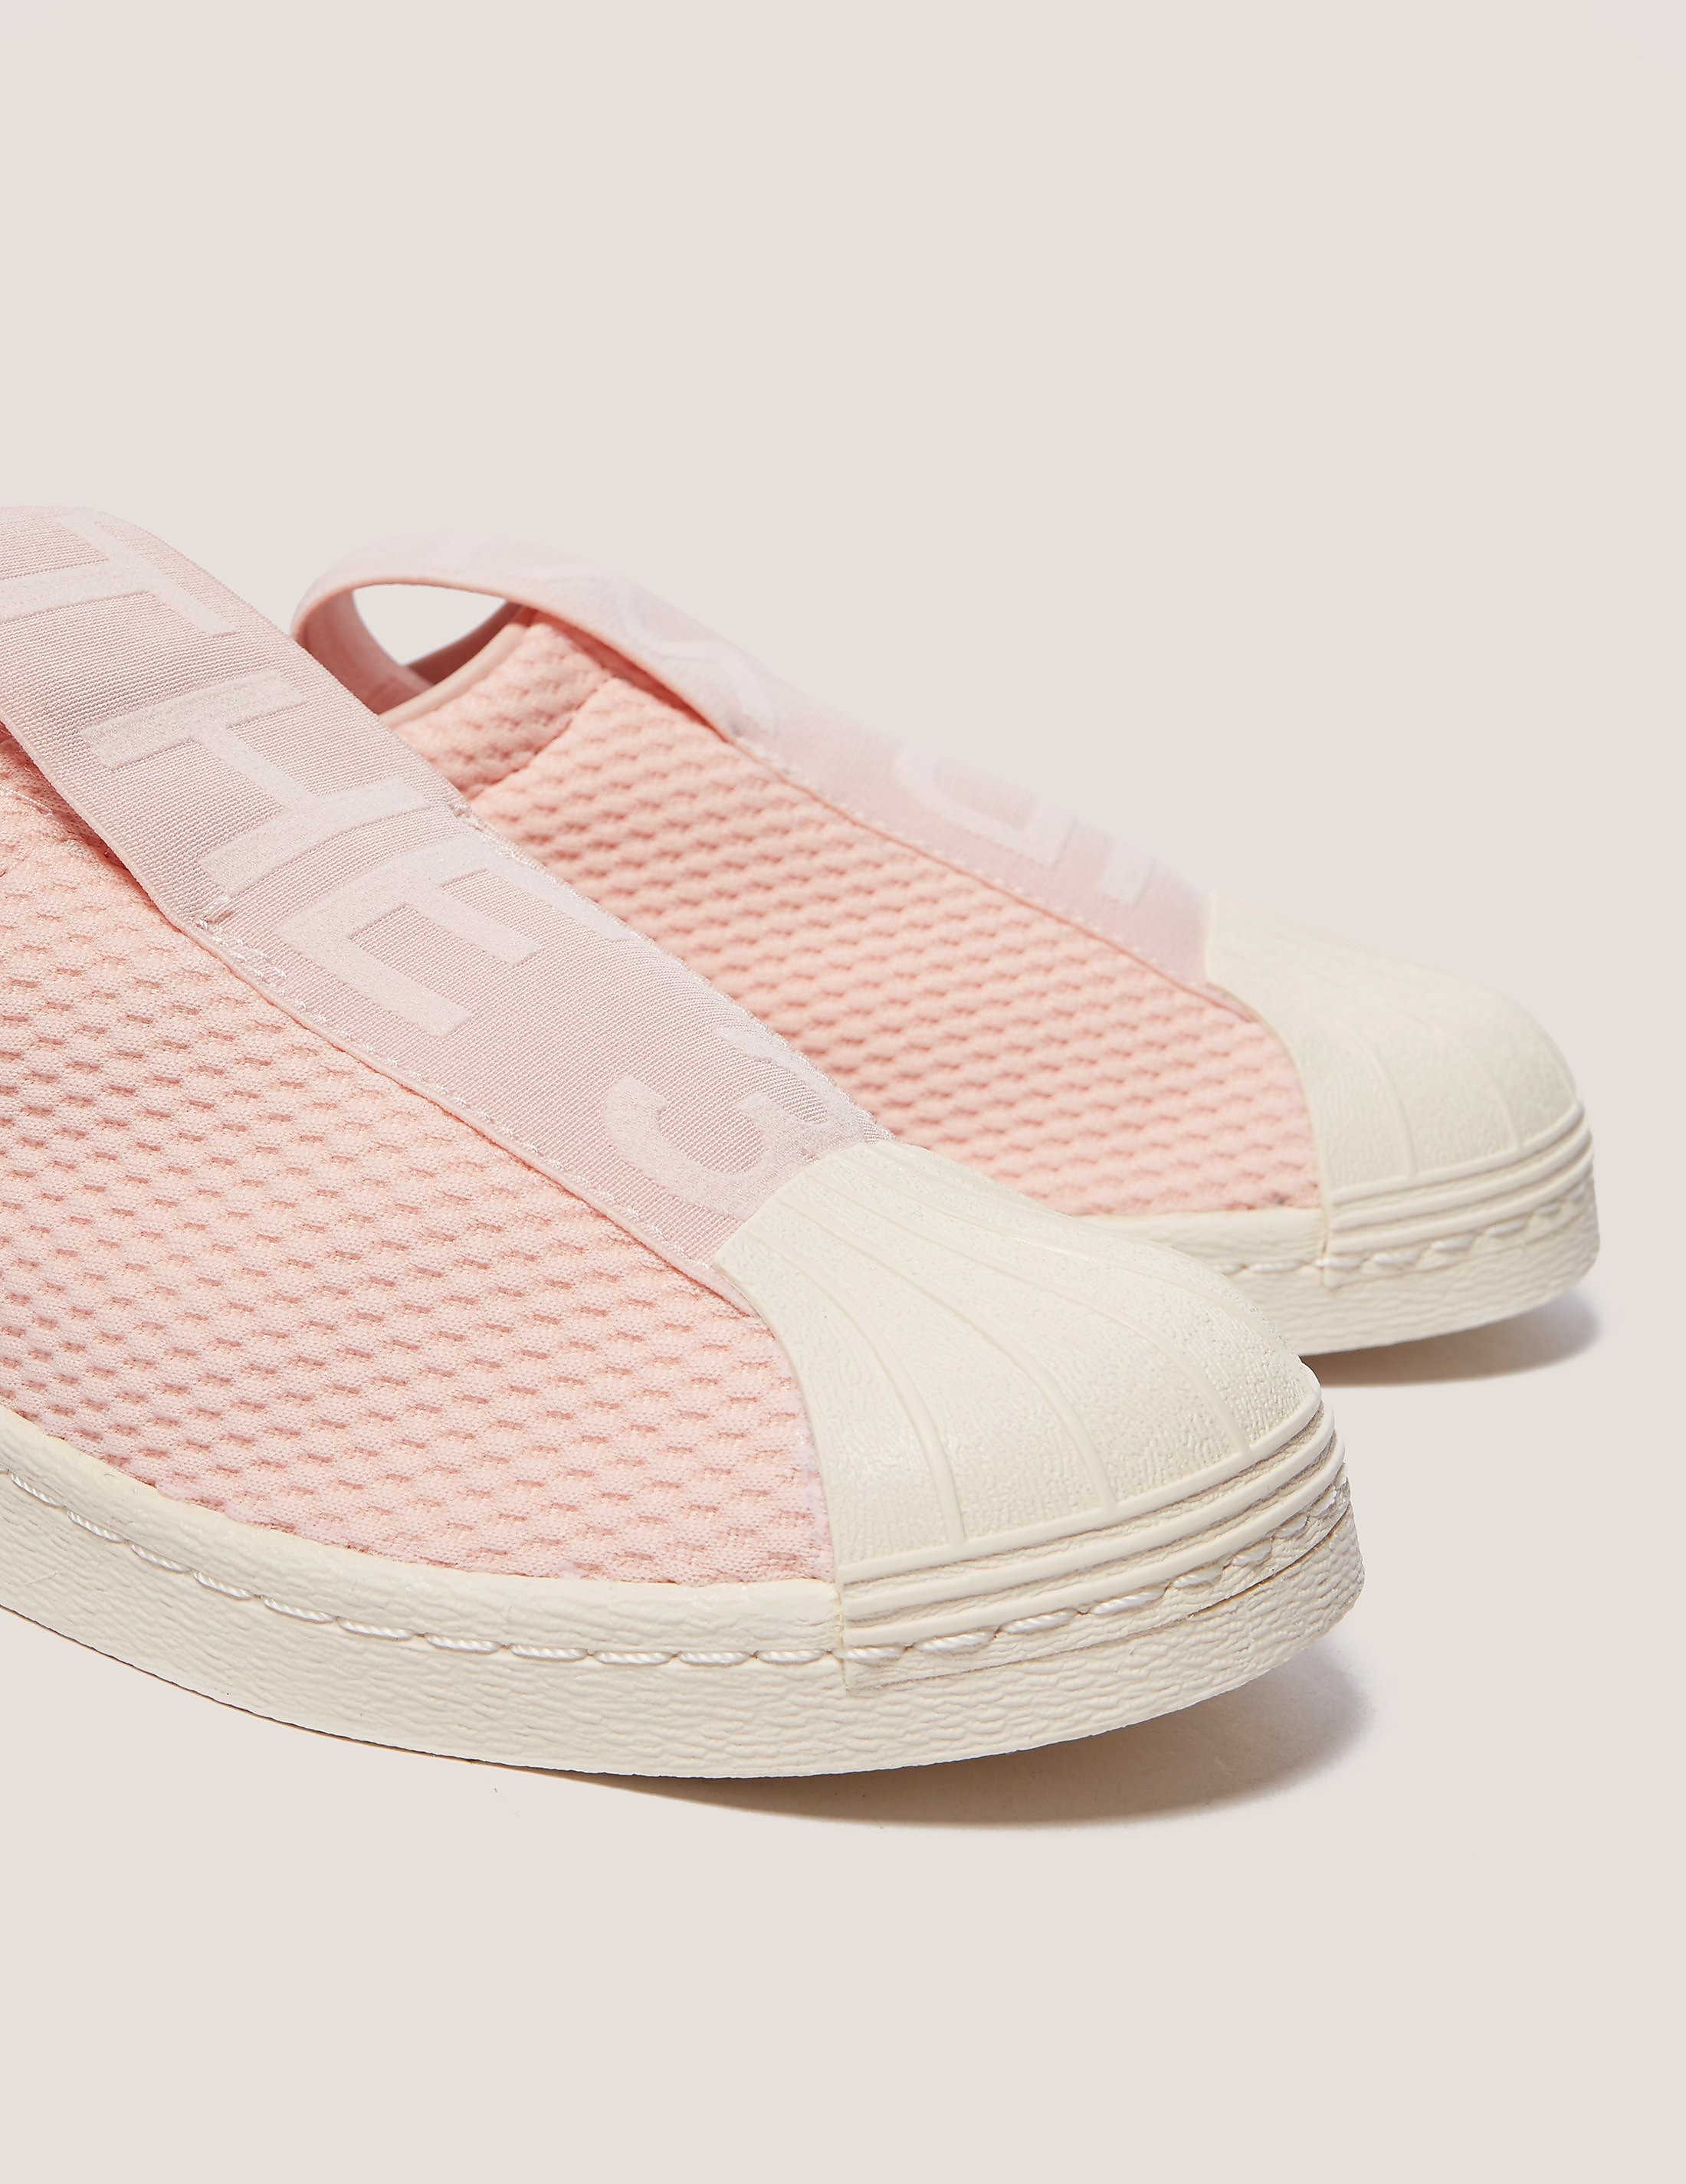 adidas Originals Superstar BW35 Slip-On Women's